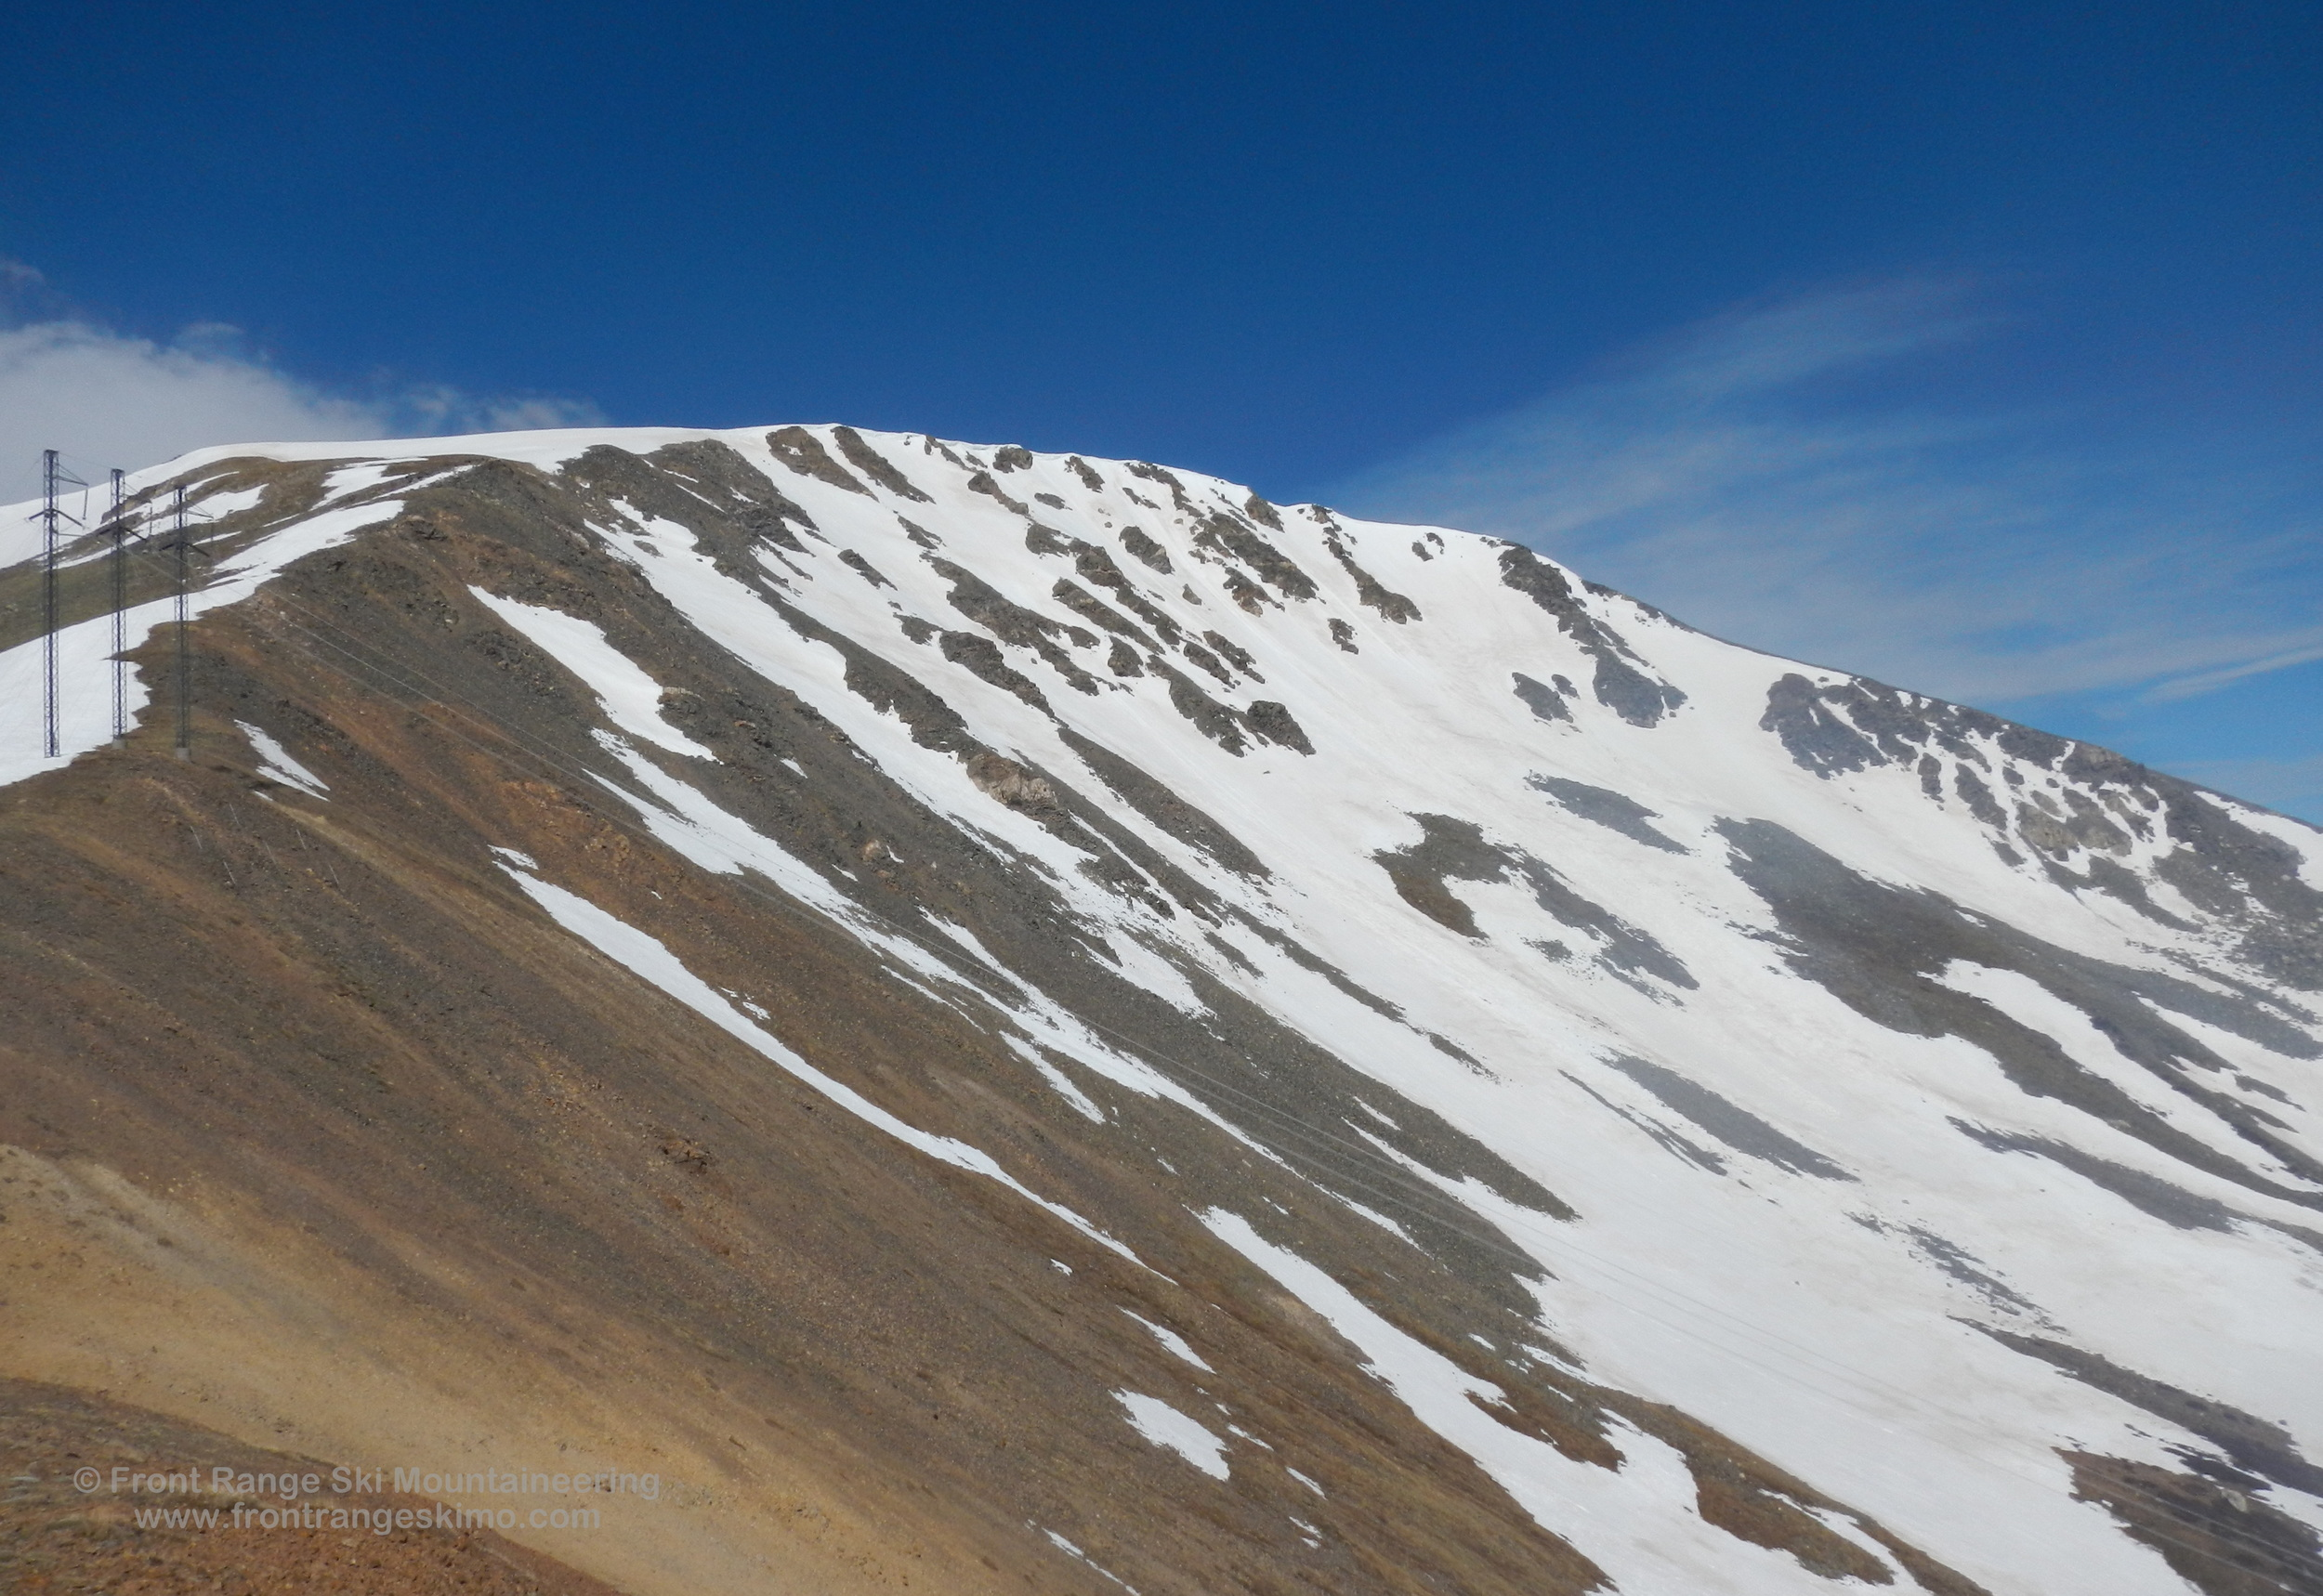 Argentine's Northeast Face from the Argentine-Wilcox saddle.